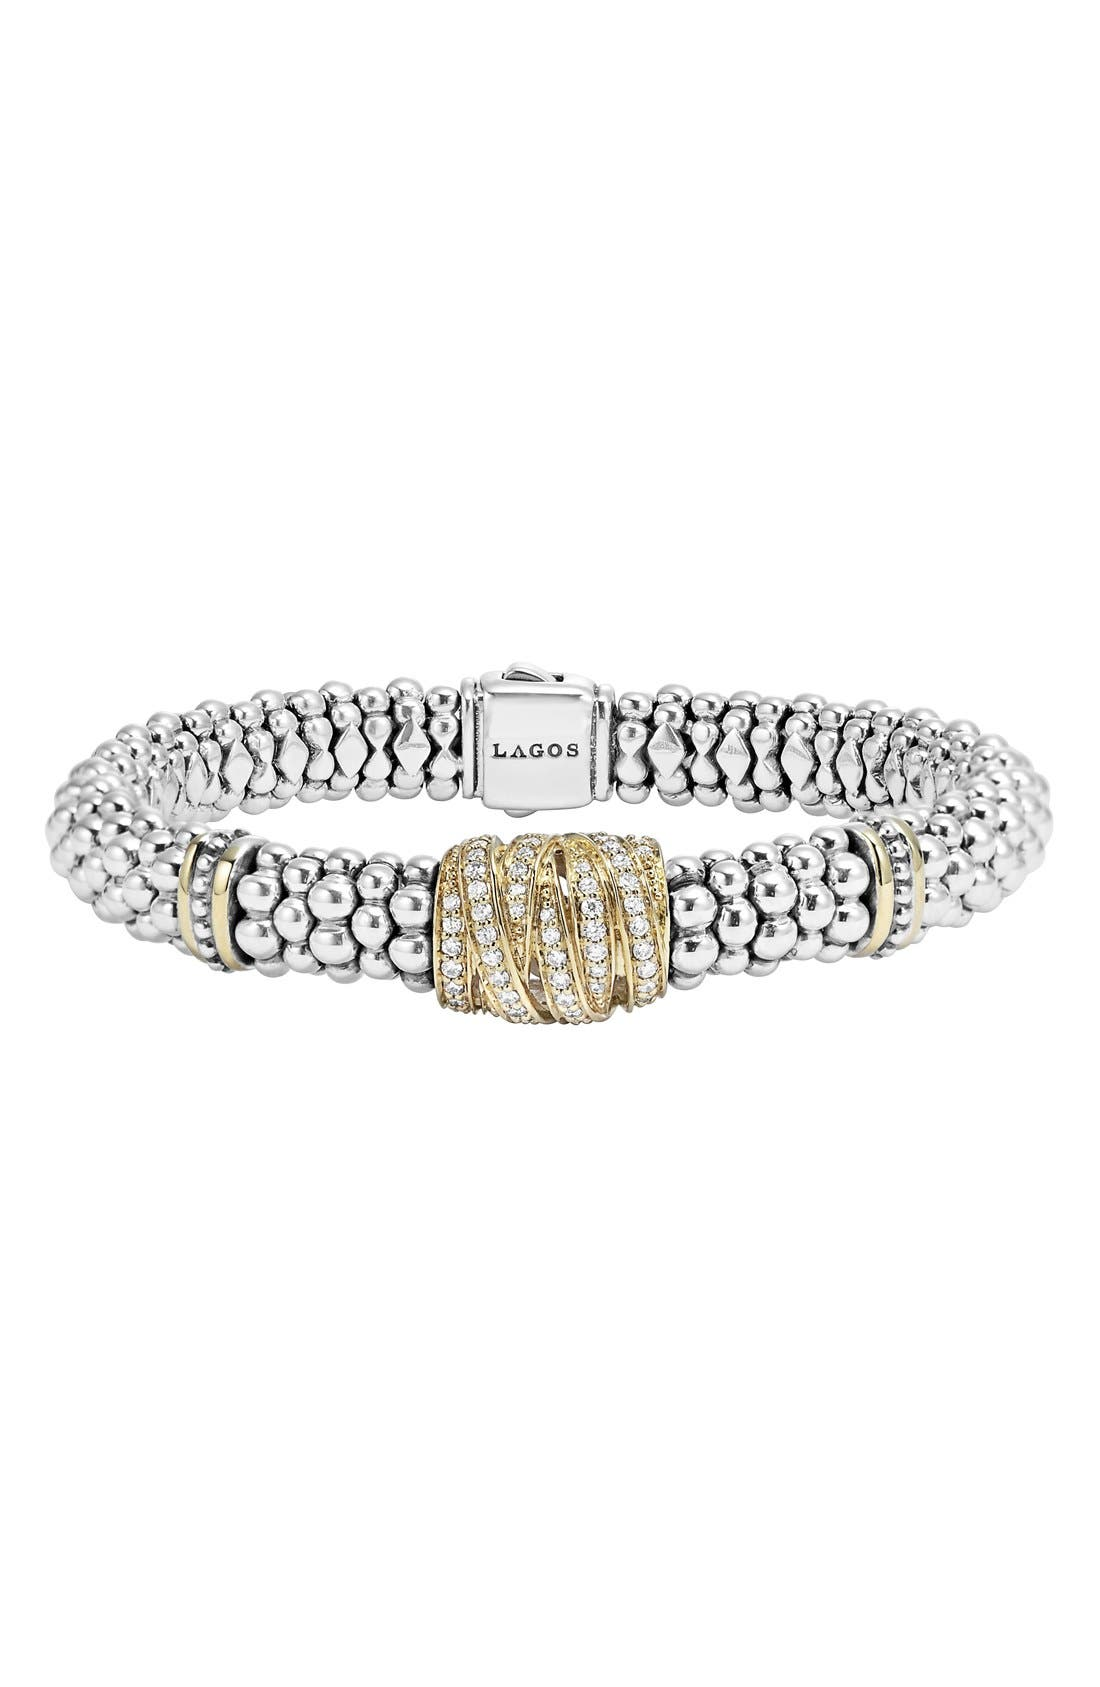 LAGOS Diamonds & Caviar Diamond Rope Bracelet